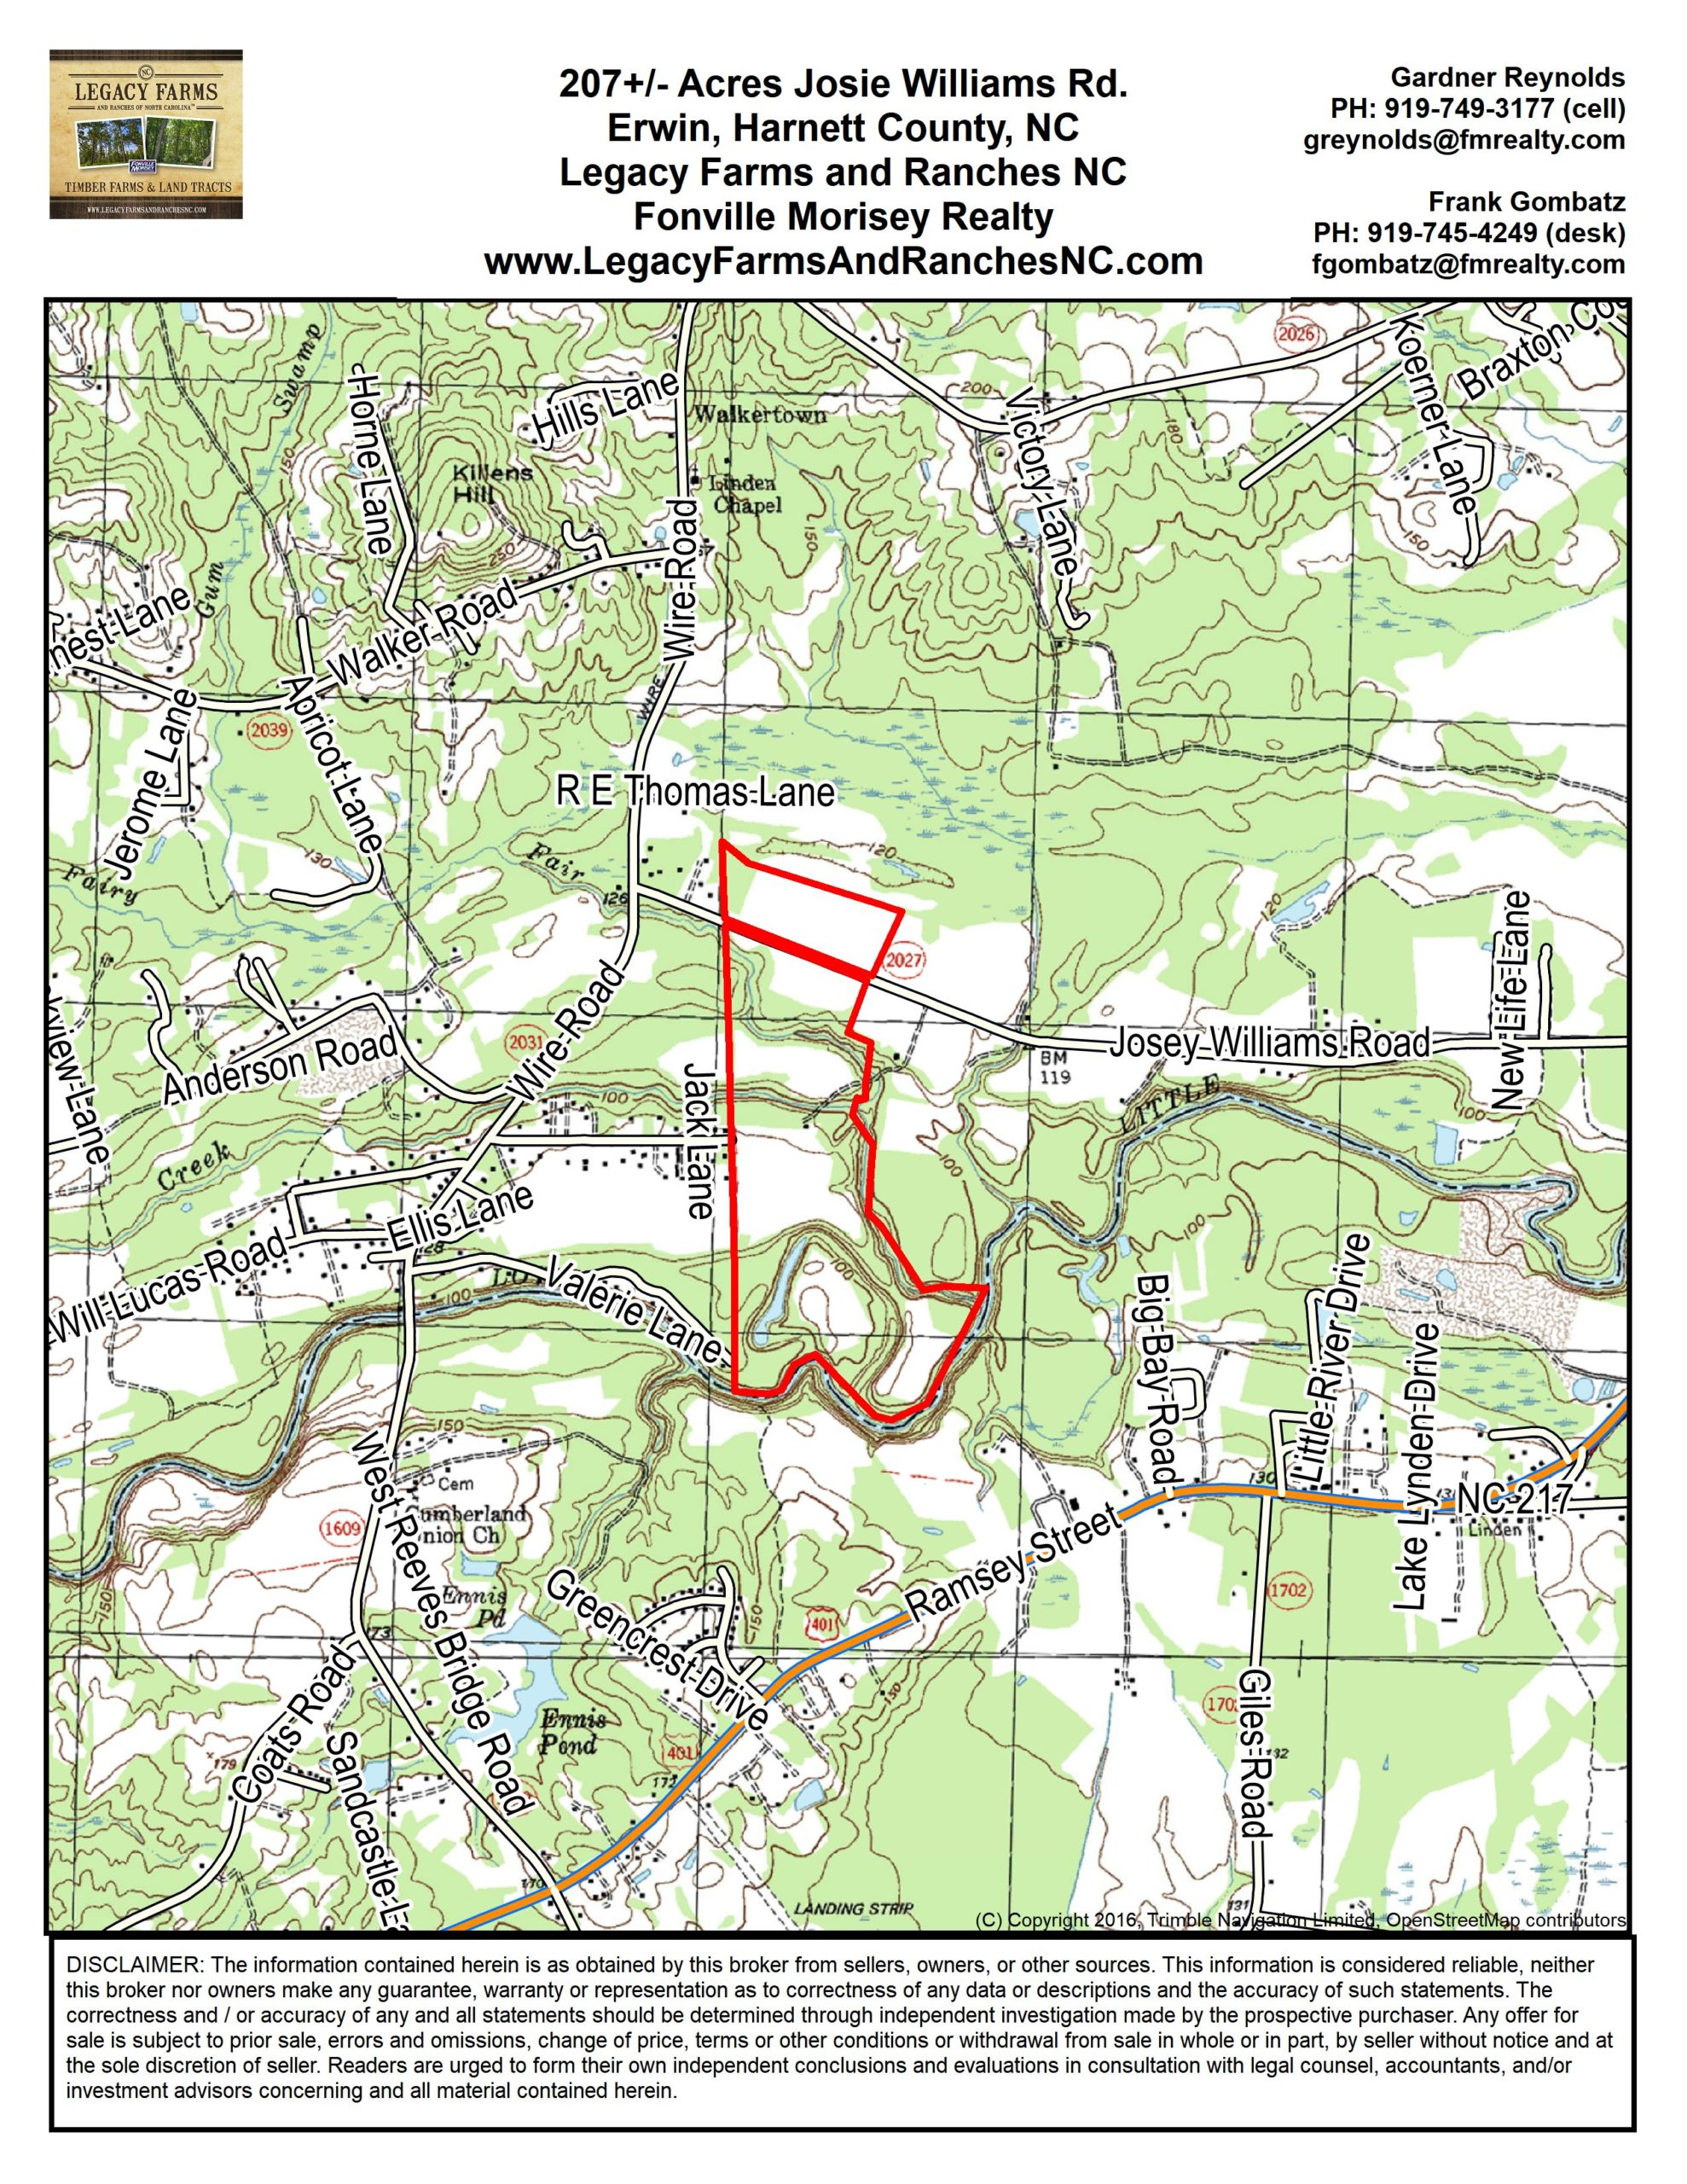 Land for sale in Harnett County, NC